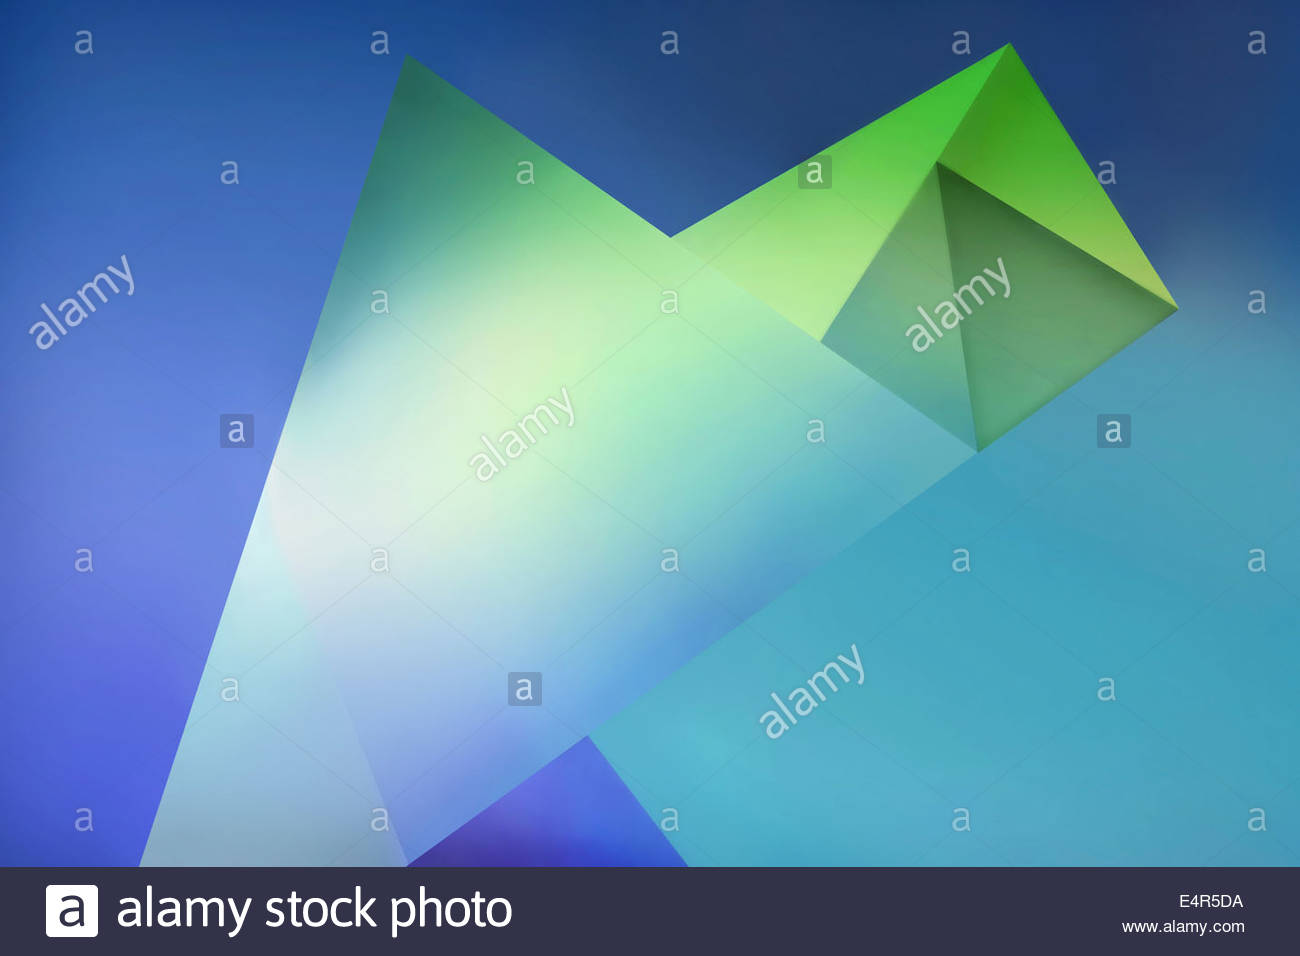 Abstract backgrounds pattern of geometric shapes - Stock Image